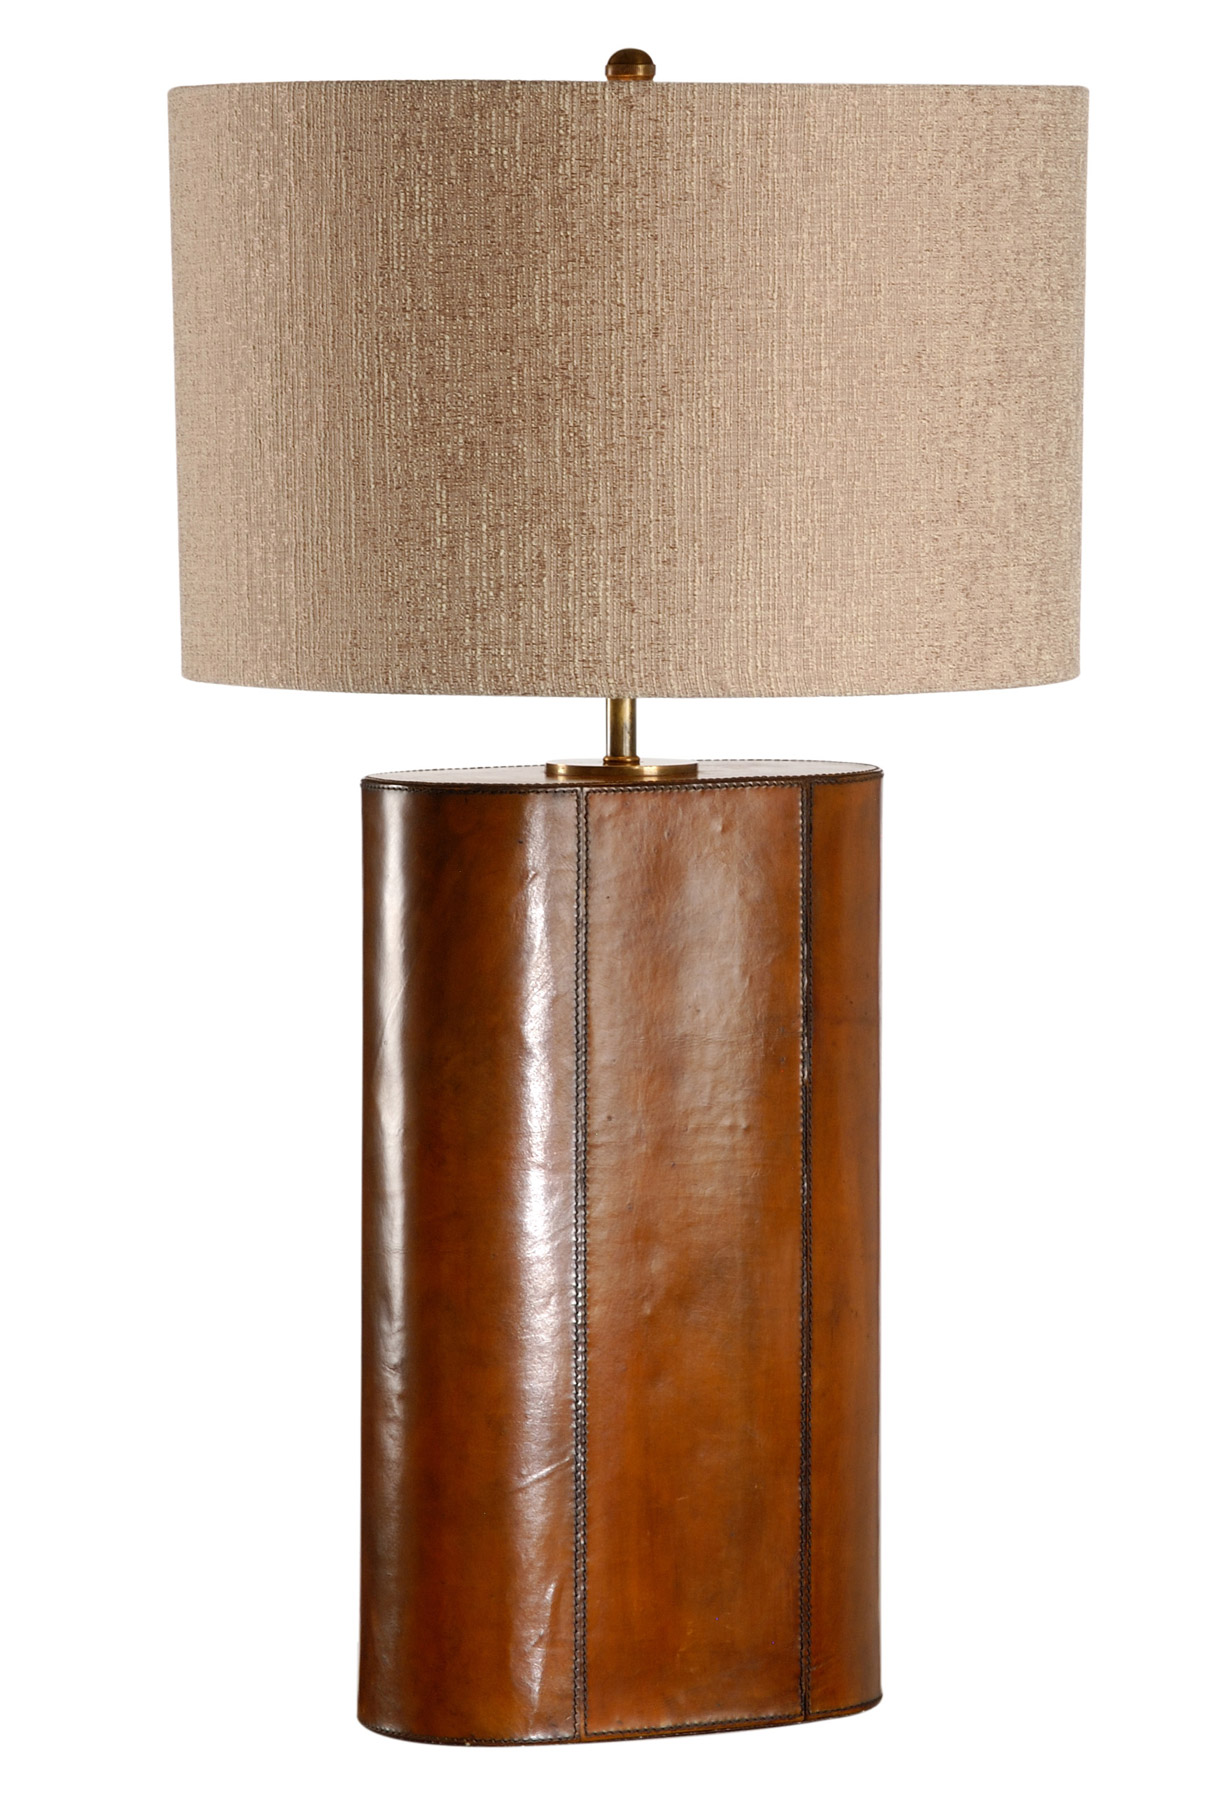 id modern shades floor furniture lamps brass century floorlamp kalmar minimal leather shade mid f pair stem lamp with austria lighting and of long l